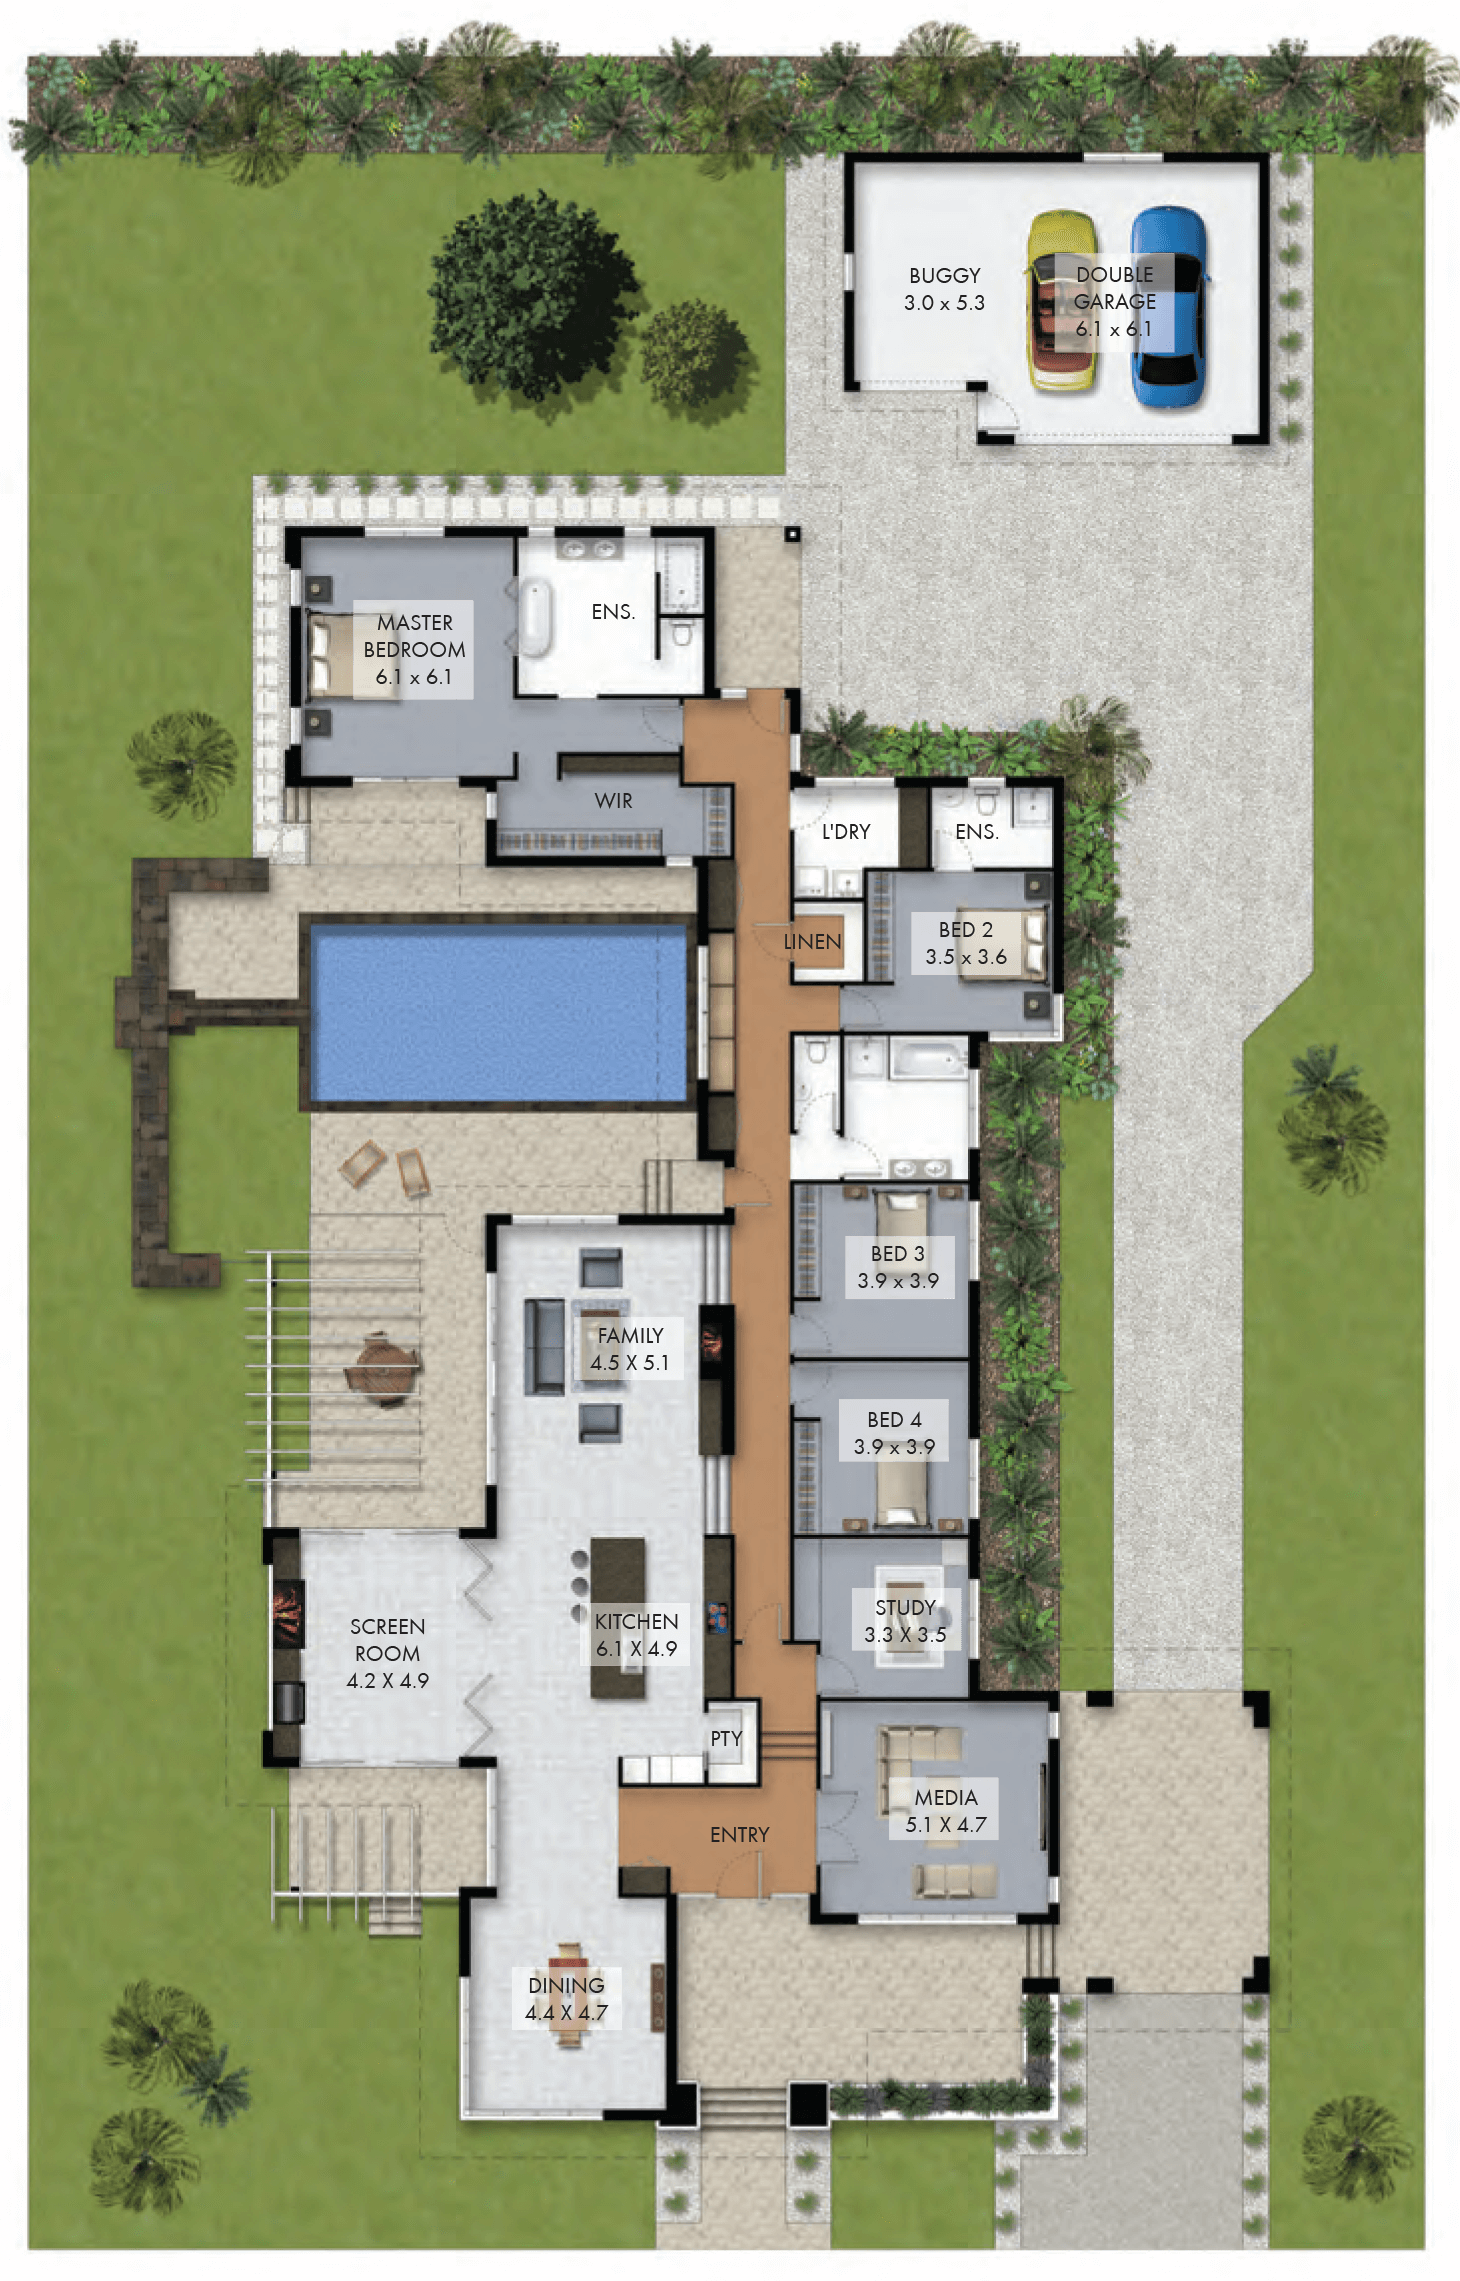 floor plan friday luxury 4 bedroom family home with pool pool designs ideas for designer swimming pools